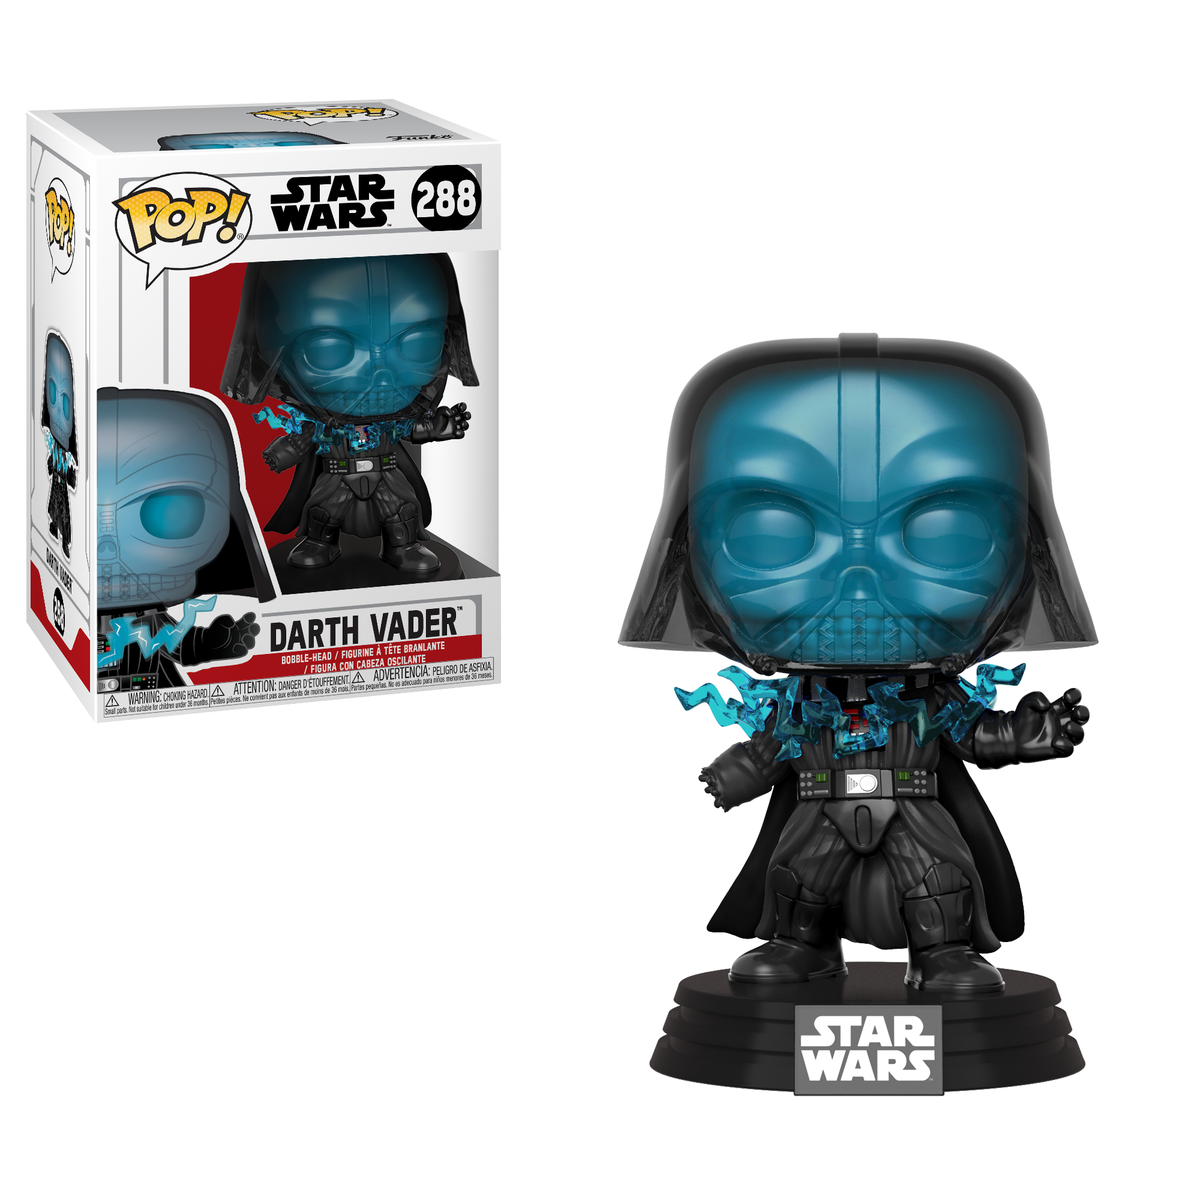 RT &amp; follow @OriginalFunko for the chance to win a Darth Vader Pop!<br>http://pic.twitter.com/M8vpgvrzzt